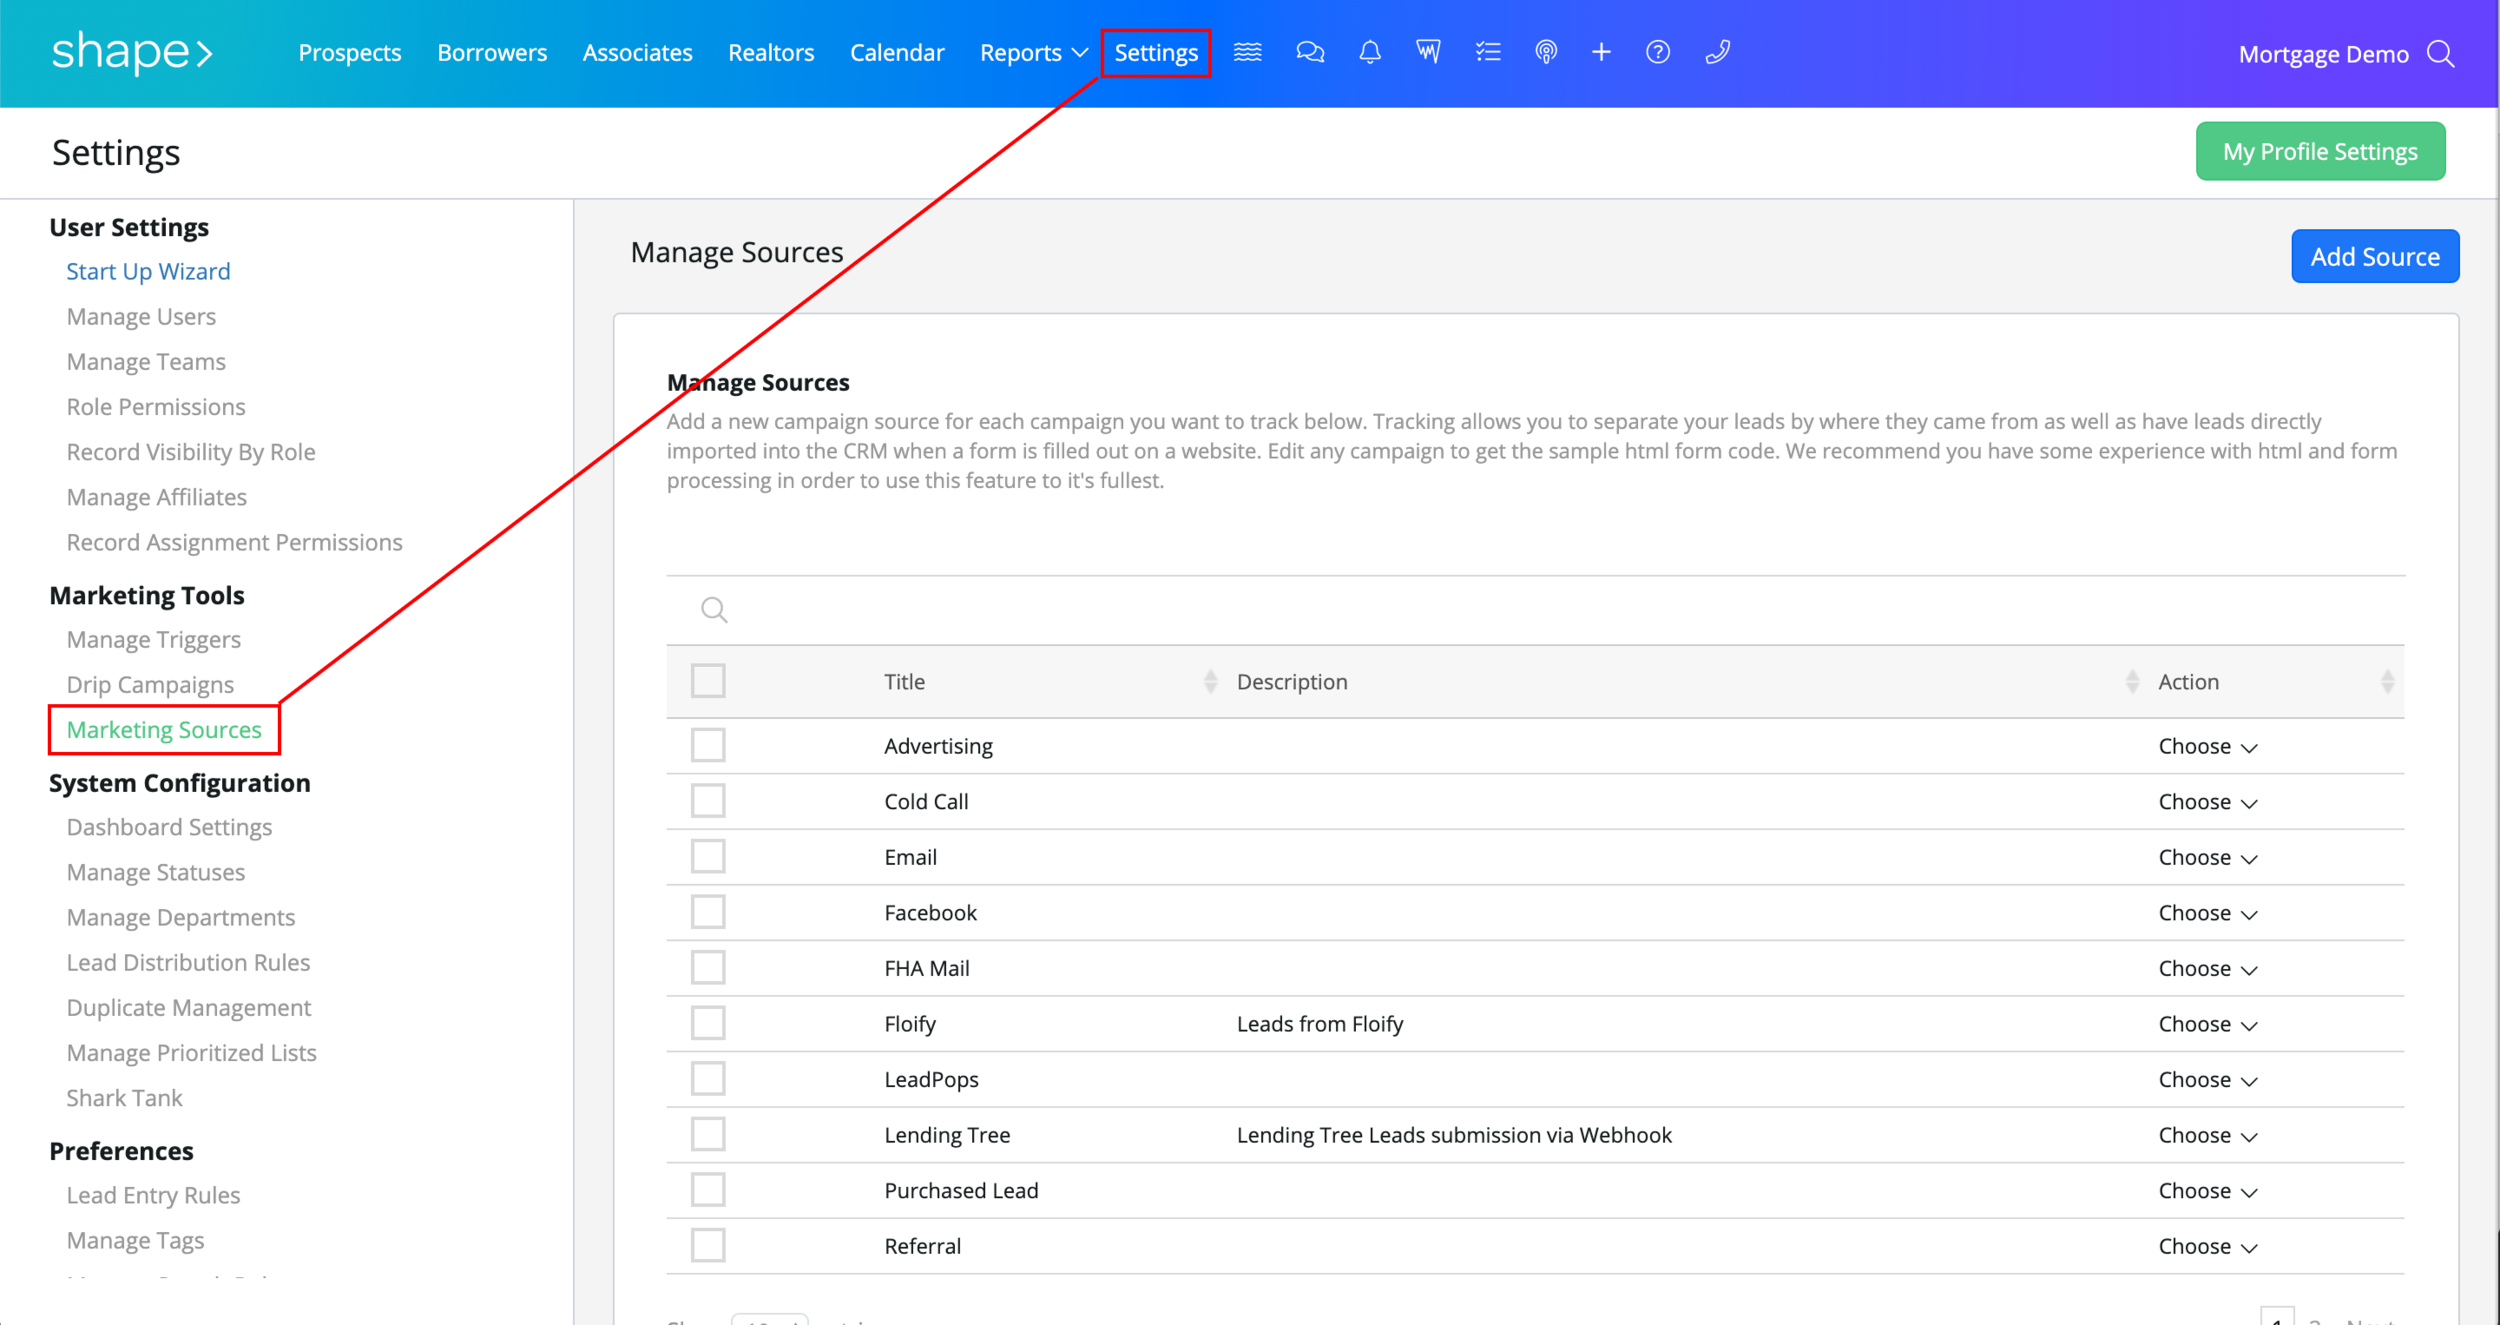 "Step 1:  Log into Shape and navigate to the Marketing Sources page by clicking ""Settings"" in the gradient navigation bar and scrolling to find ""Marketing Sources"" on the left hand sidebar. Or visit this link directly once logged in:  https://secure.setshape.com/marketing-sources"